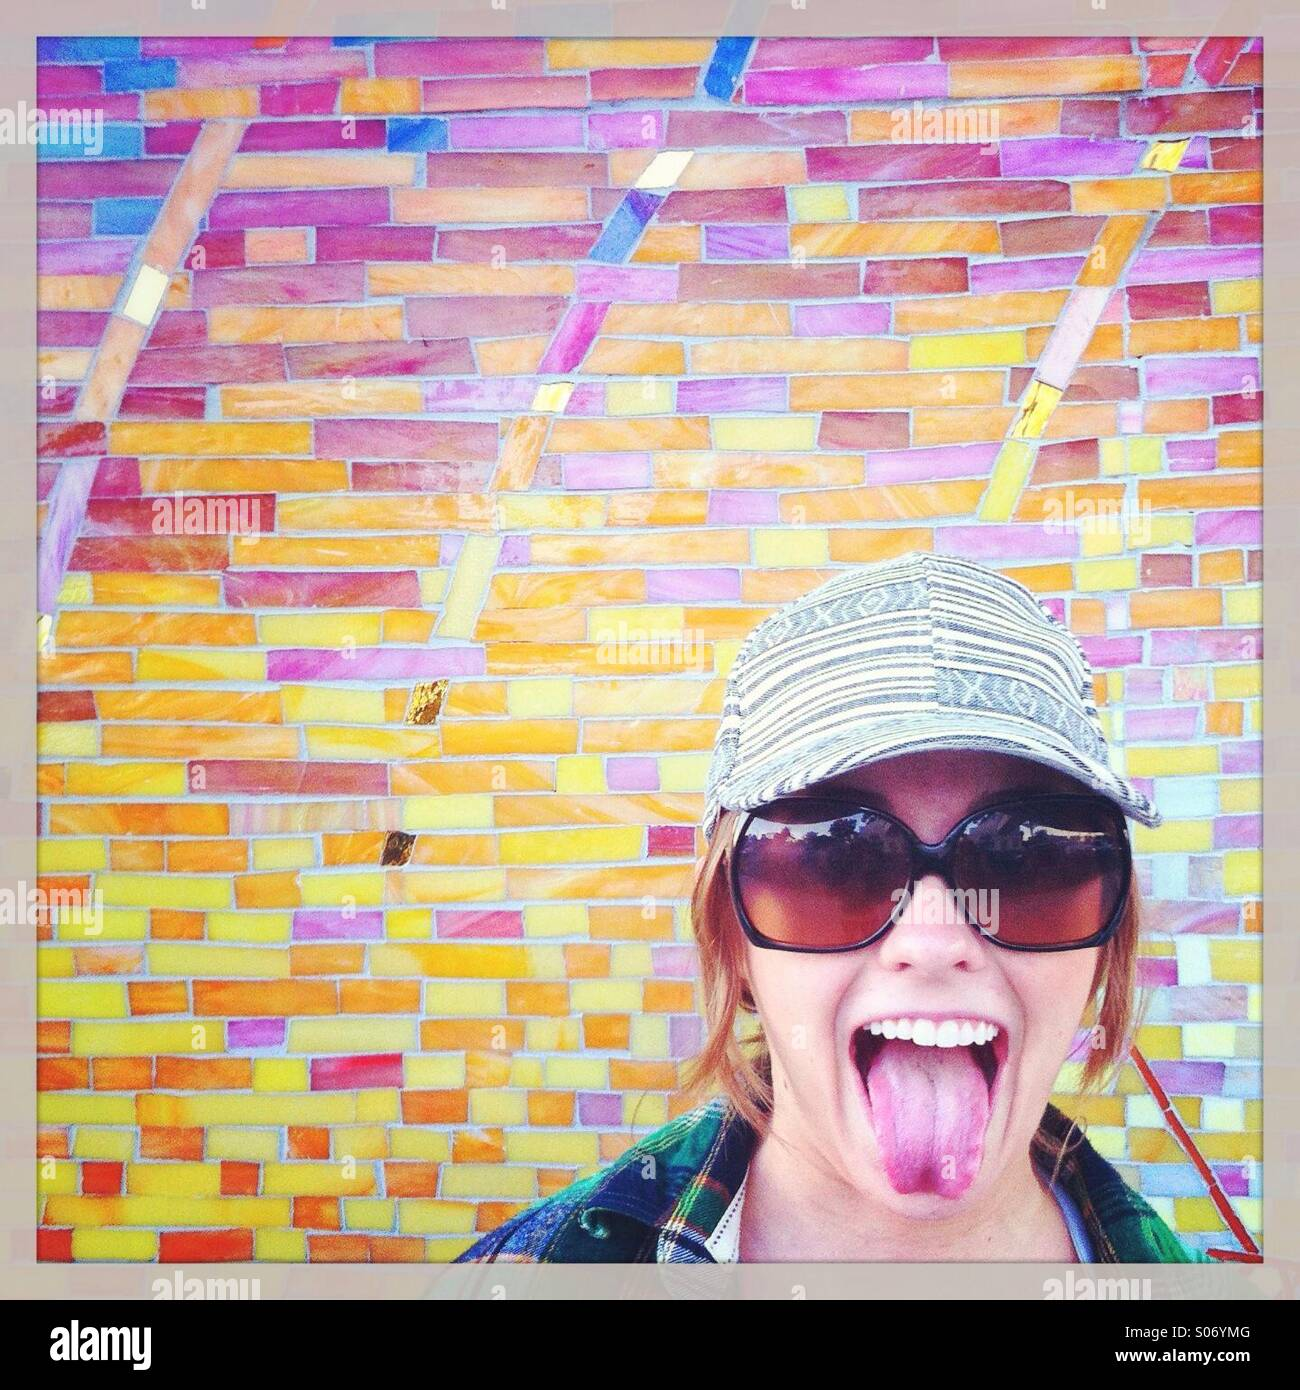 Woman sticking her tongue out in front of mosaic wall - Stock Image